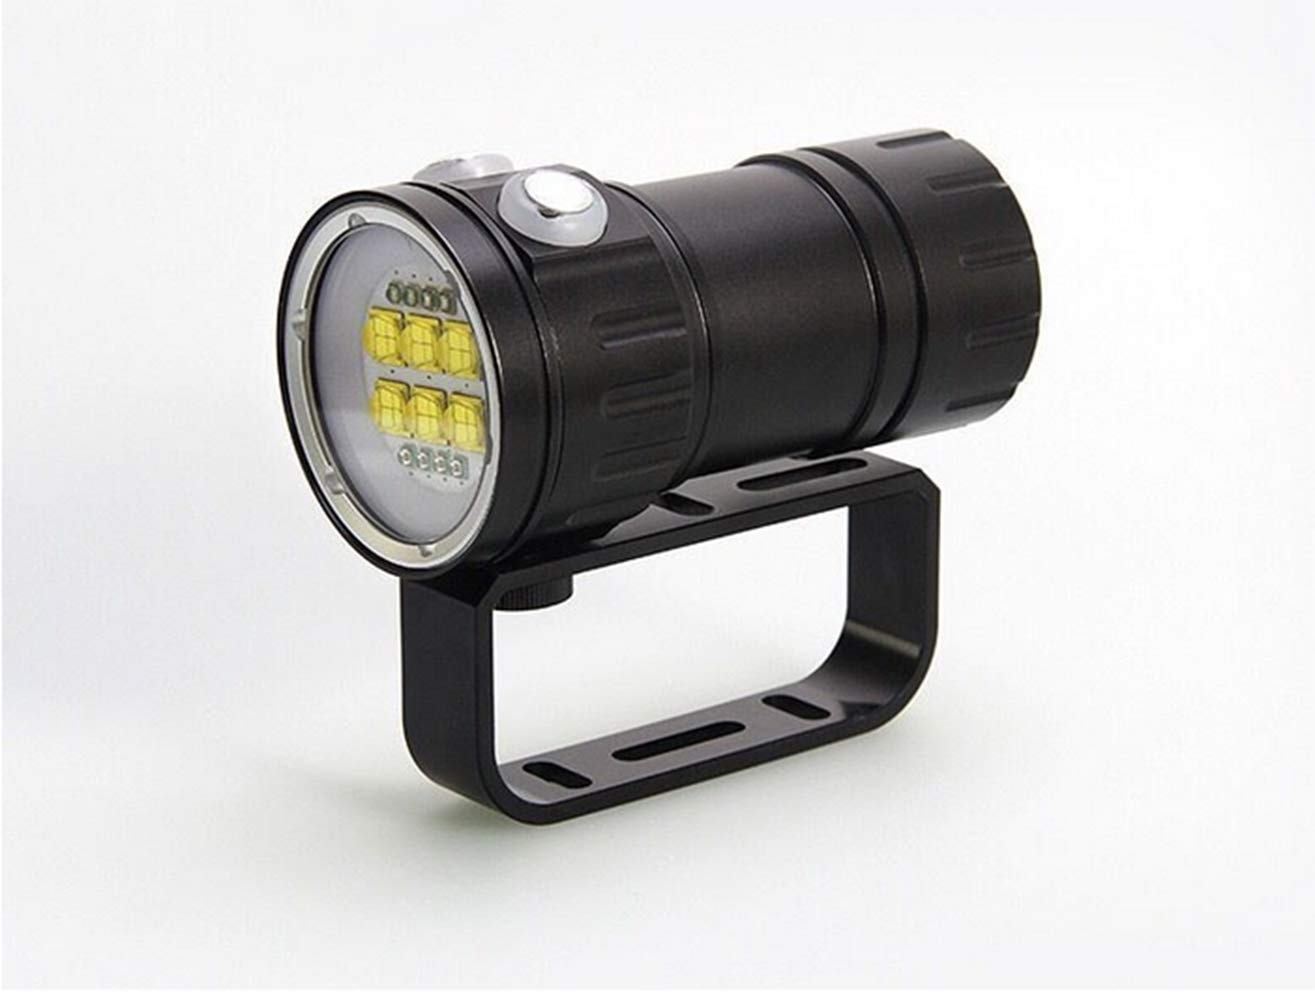 LINGXU Diving Flashlight, 300W Professional Photographic Fill Light, red Blue Light high Power Underwater 80 Meters IPX8